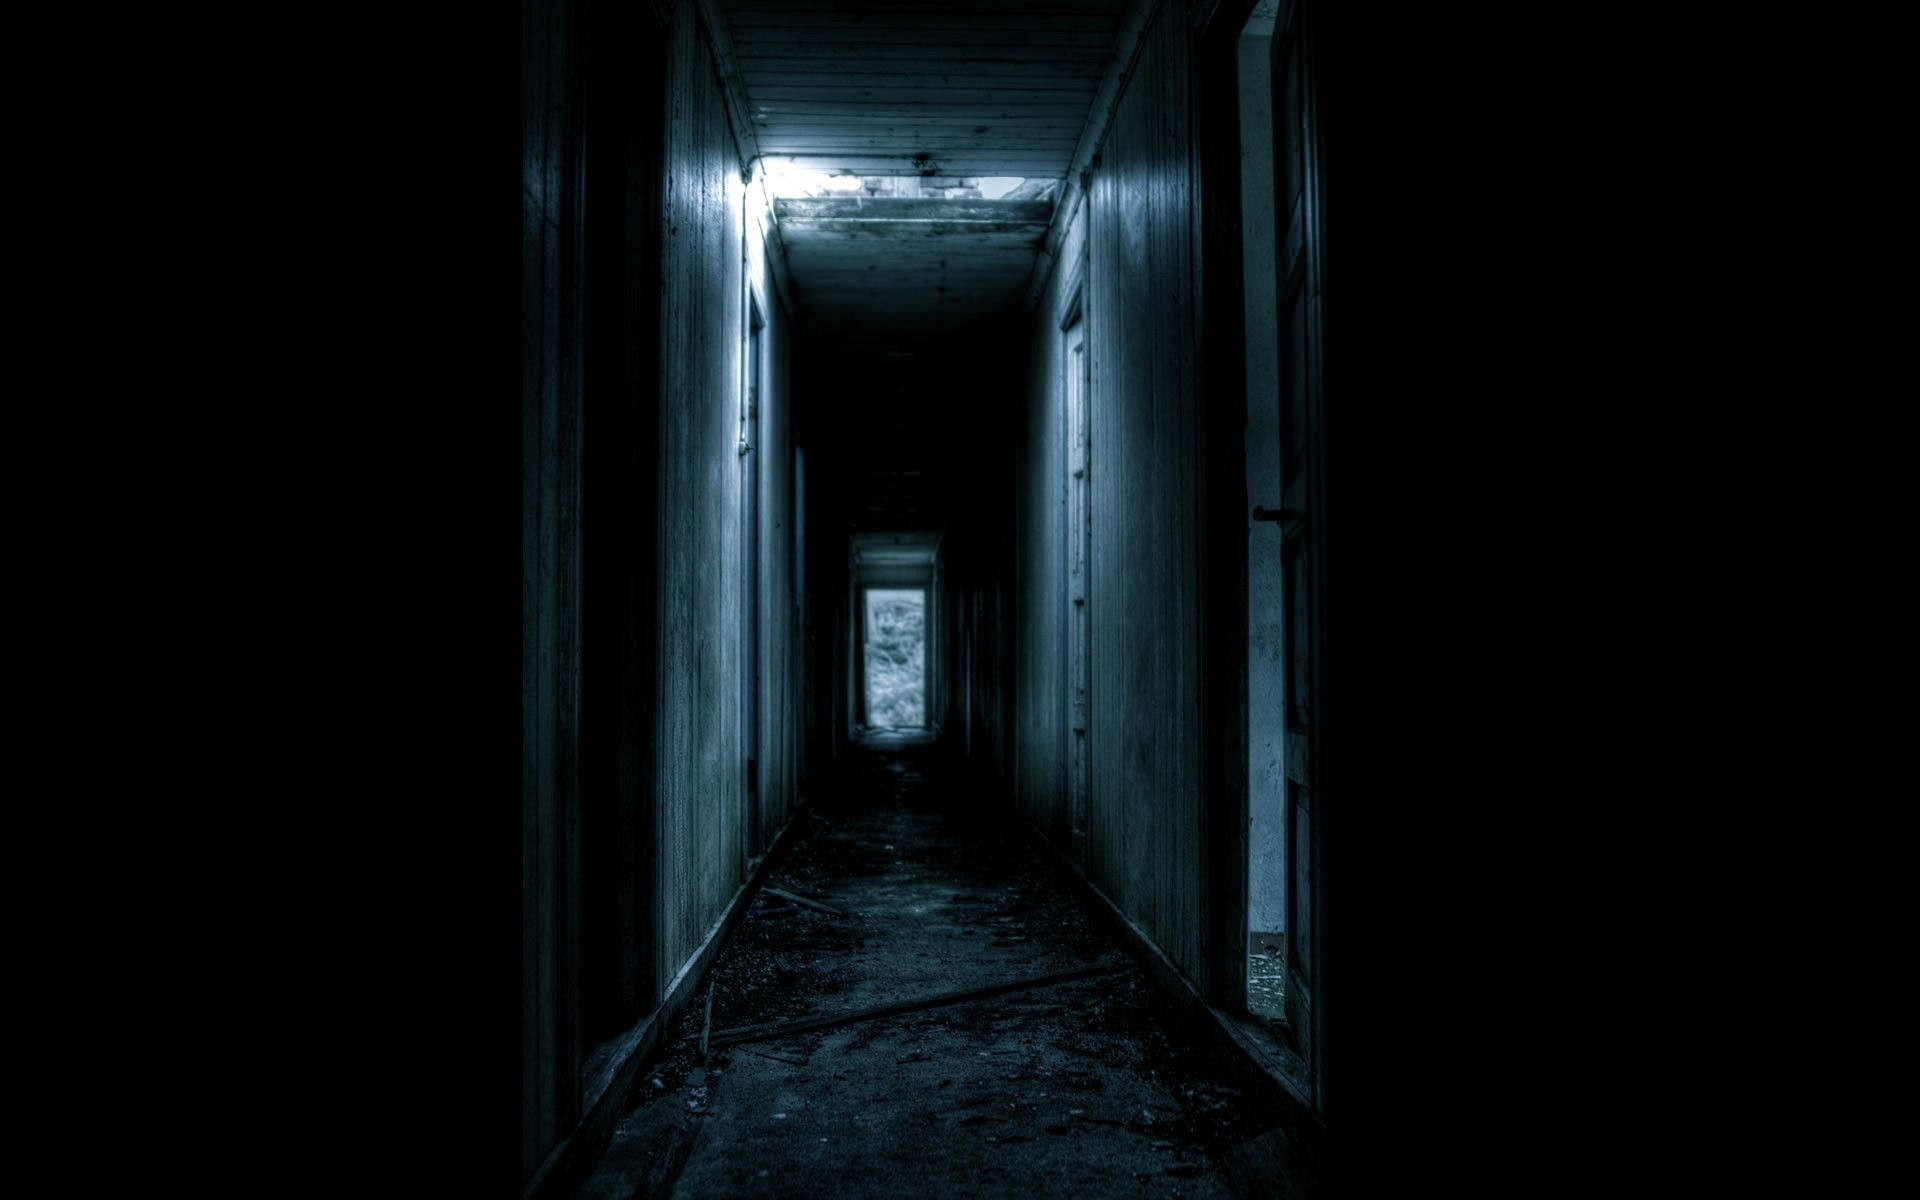 Dark and scary wallpapers 62 images - Dark horror creepy wallpapers ...